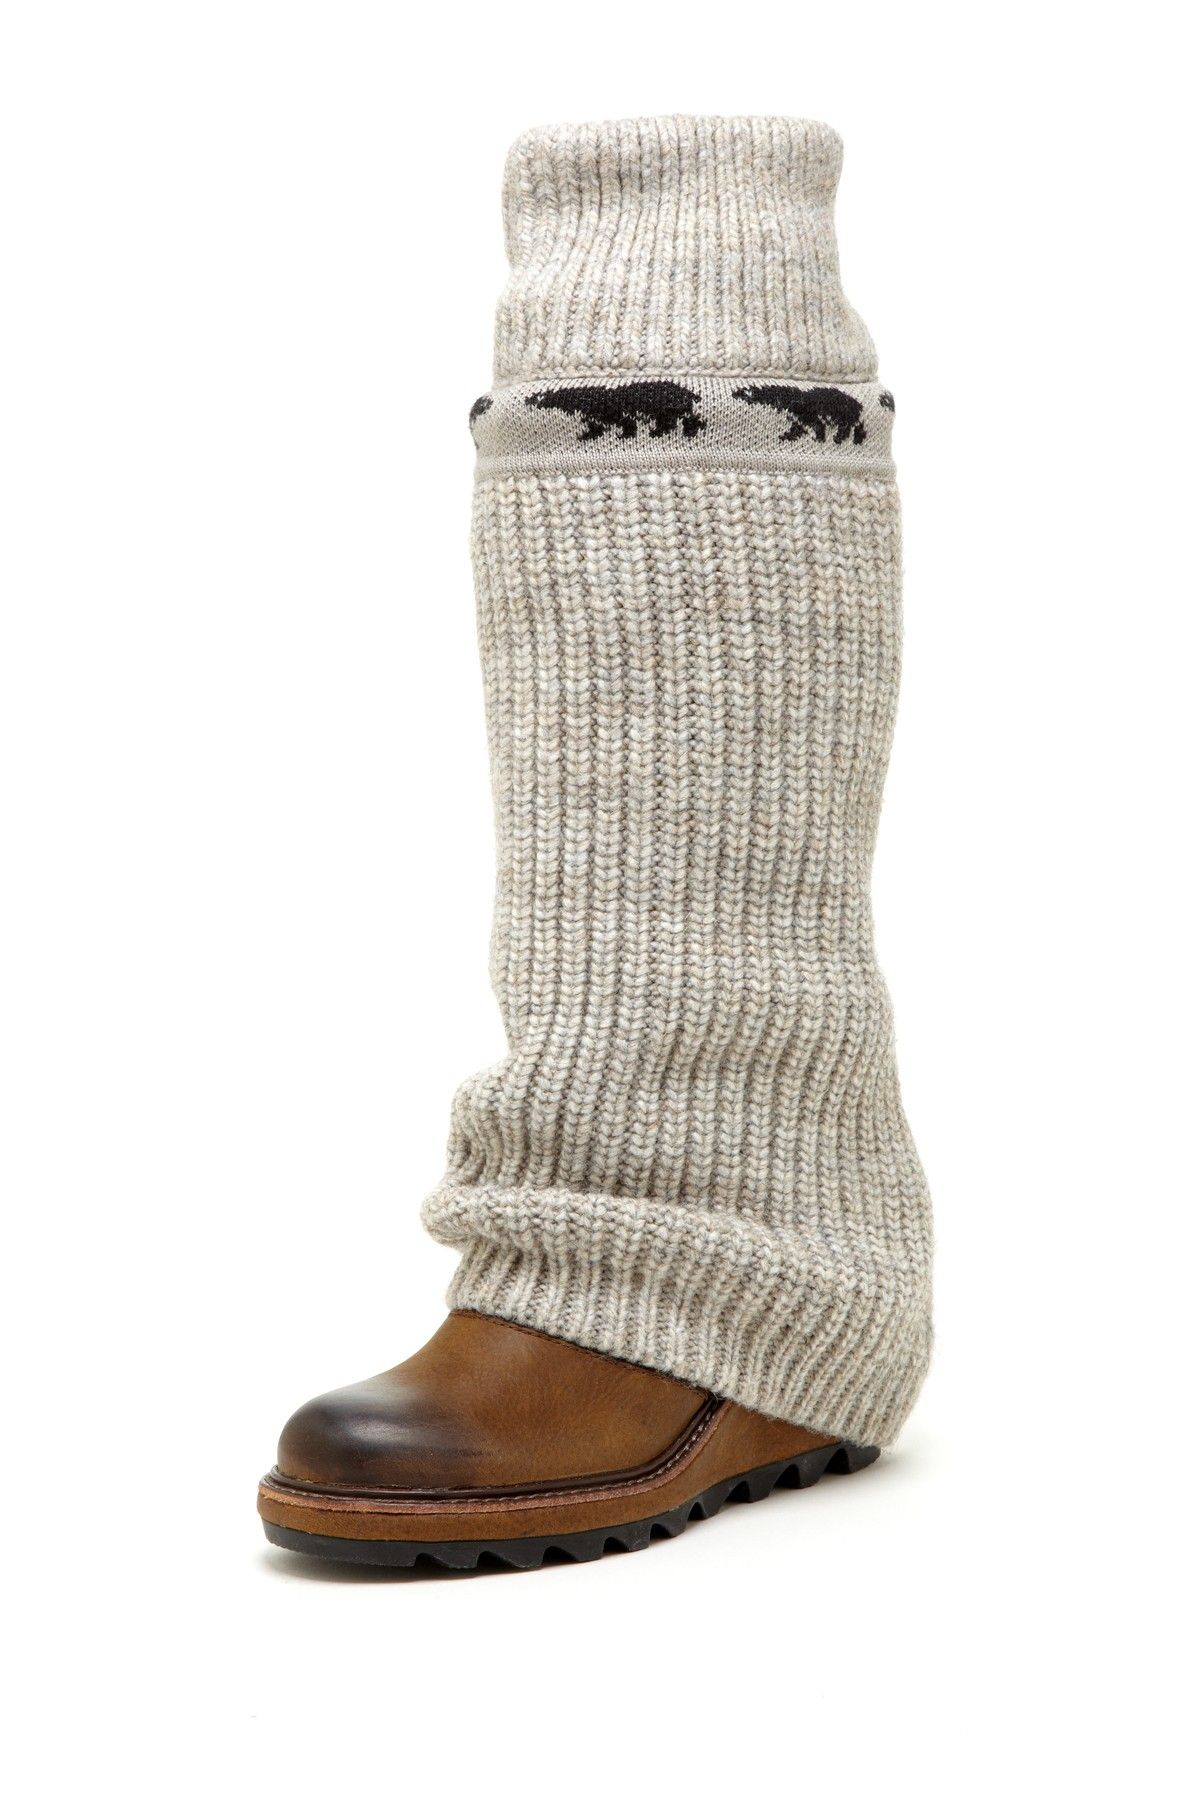 7611468d717 Crazy Cable Wedge Boot in brown by Sorel  320 -  185  HauteLook.  Leather knit upper